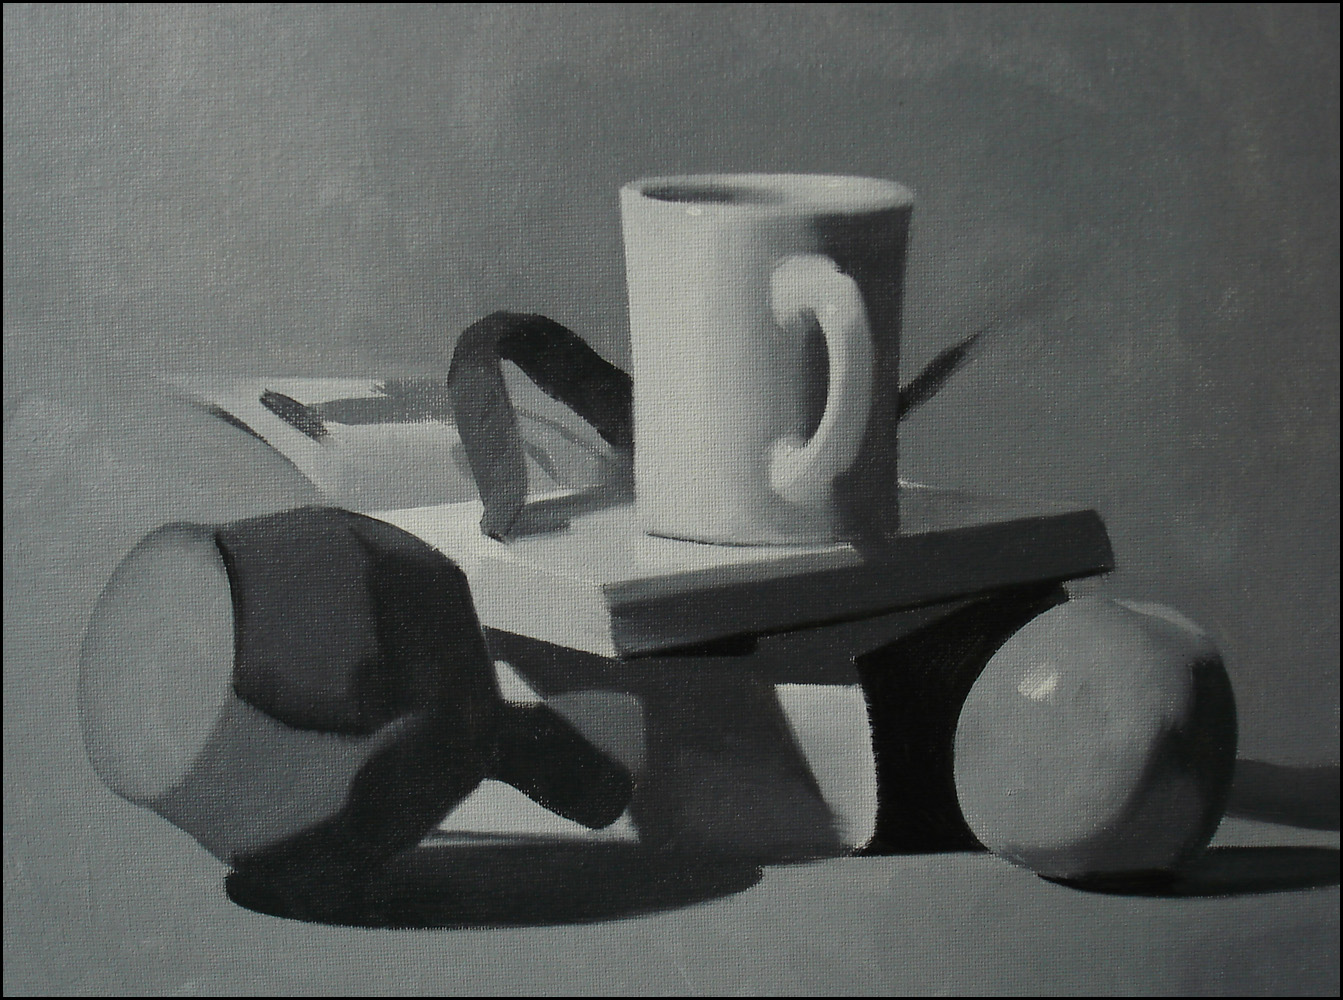 Grisaille Still Life With Mug, 9x12 inches